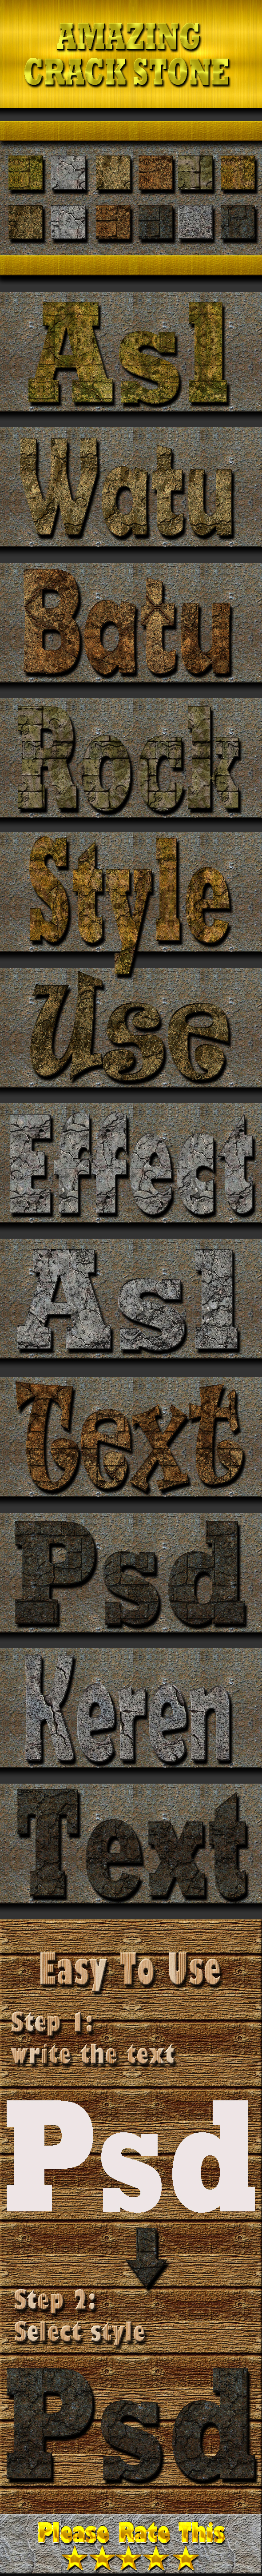 Cracked Stone Text Effect Style Vol 2 - Styles Photoshop